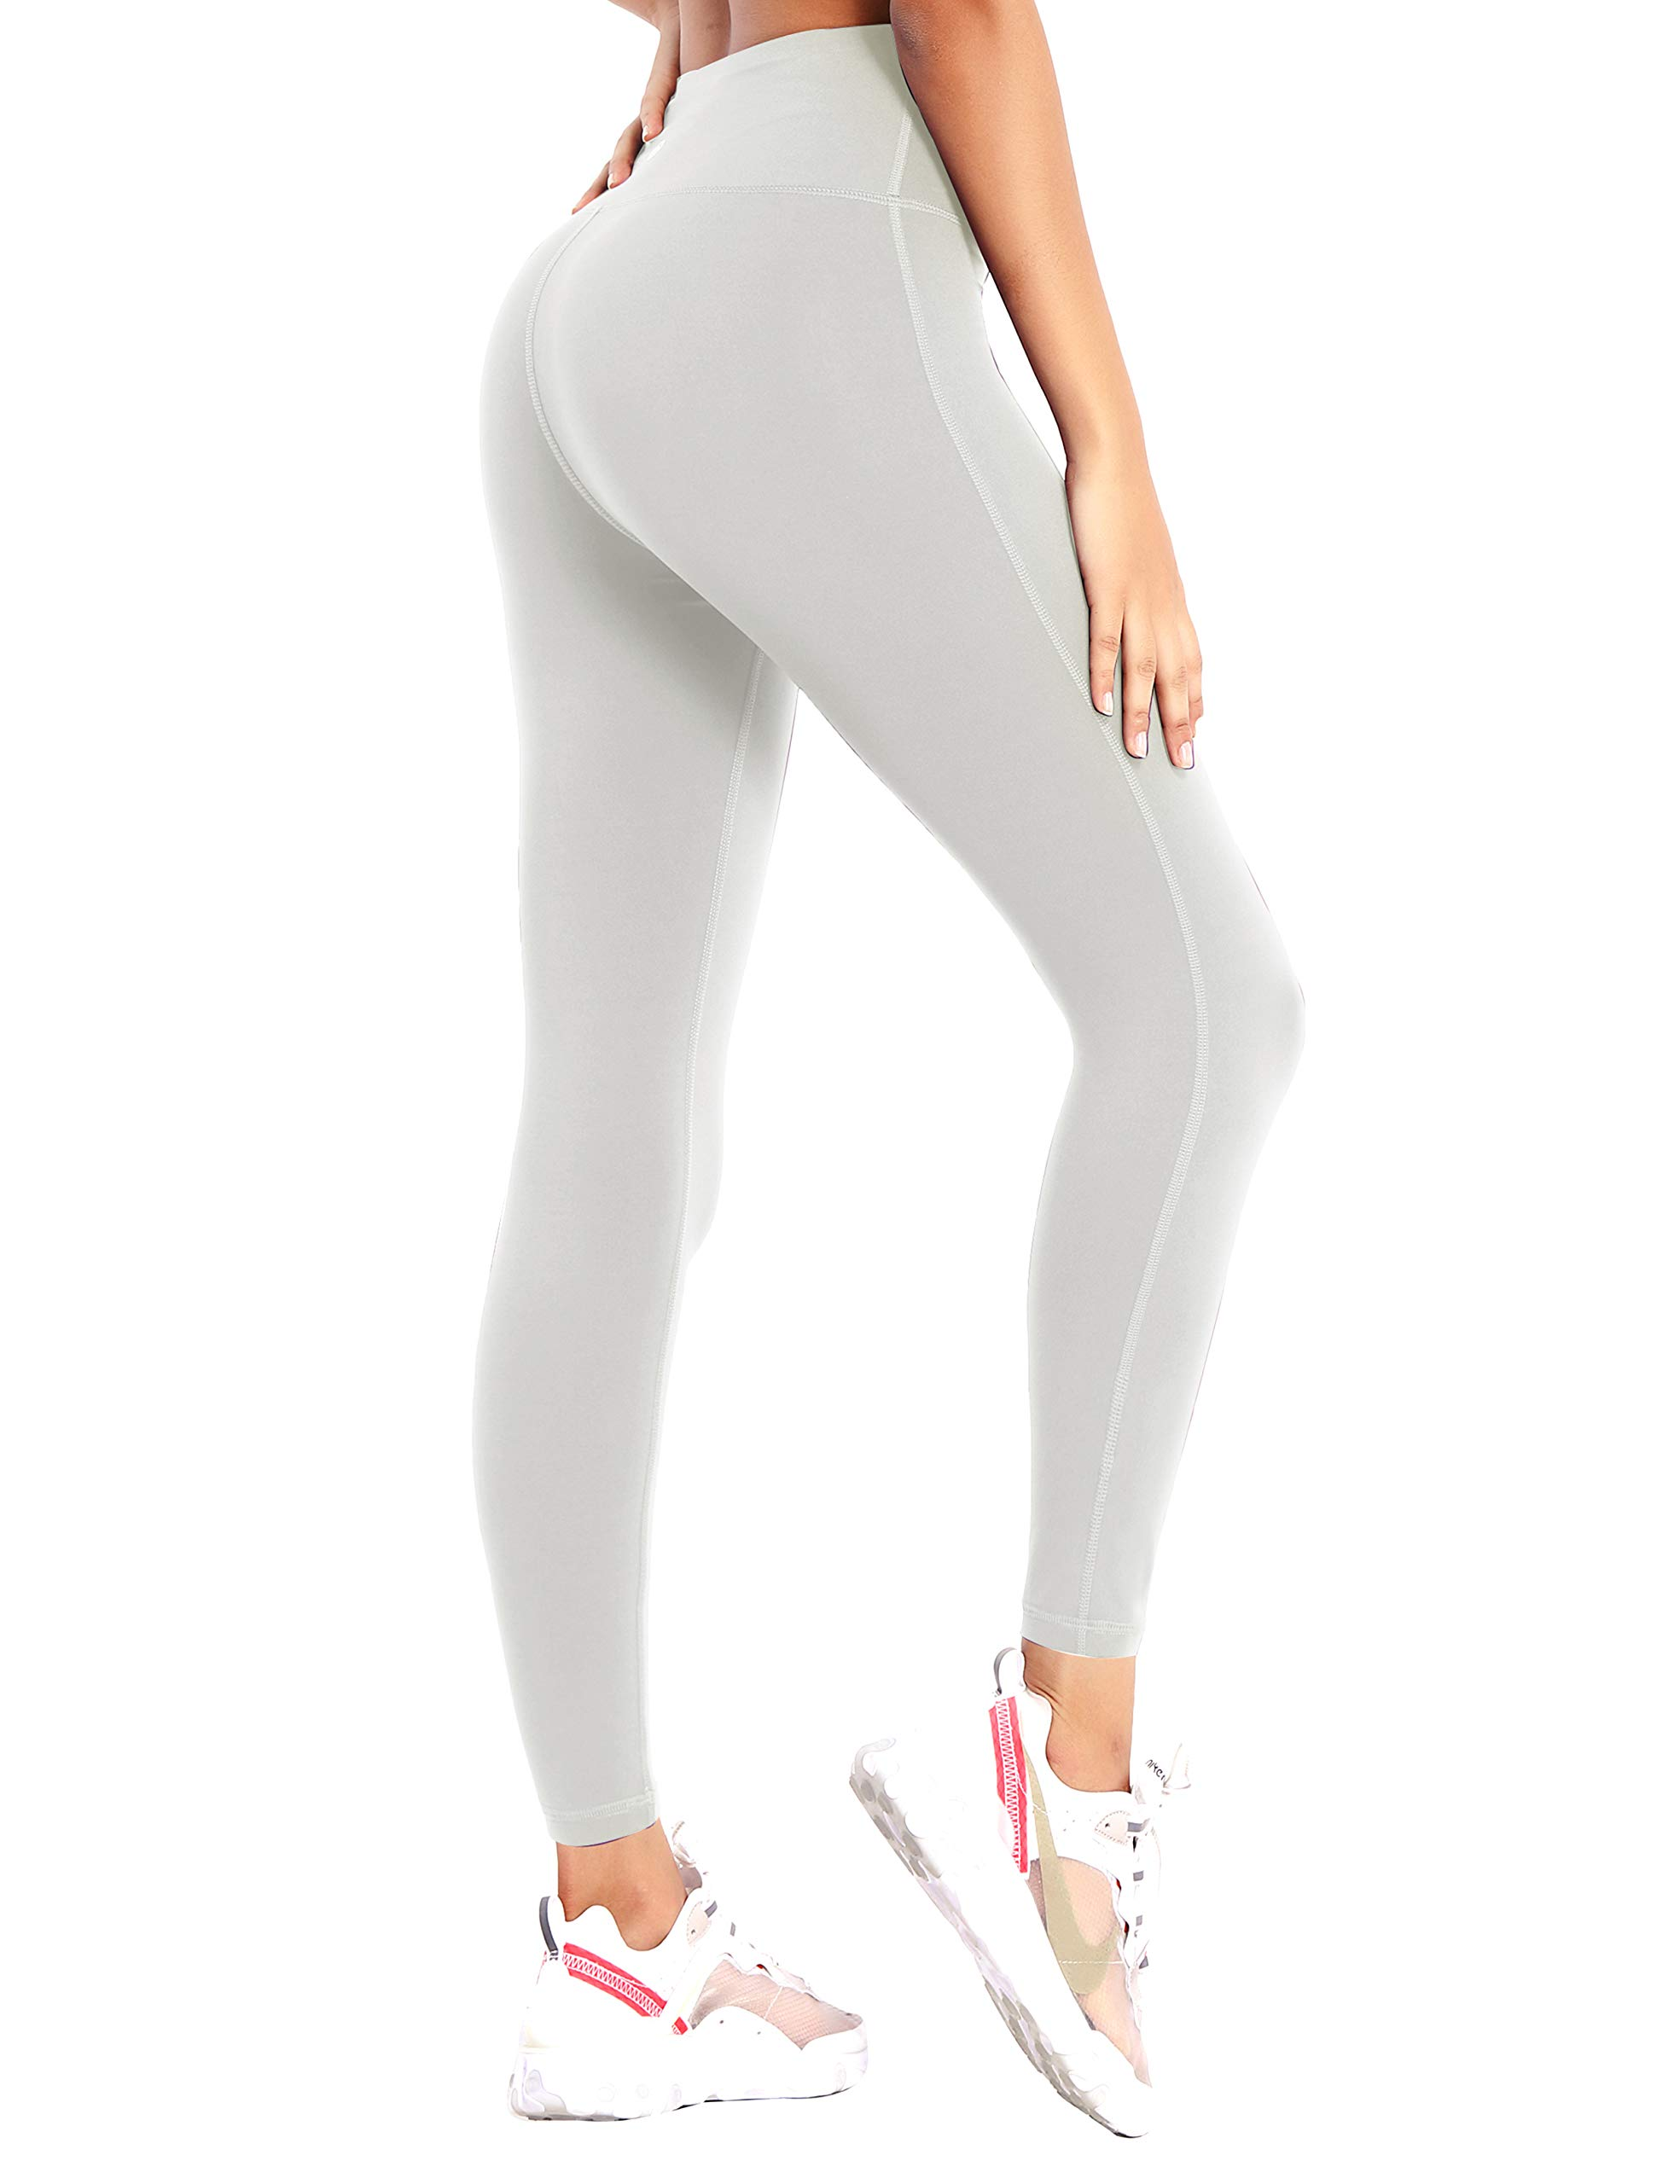 "BUBBLELIME 22""/26""/28"" High Waist Yoga Pants with Inner Pocket - Single Line Pants_LightGray X-Small-26 Inseam"